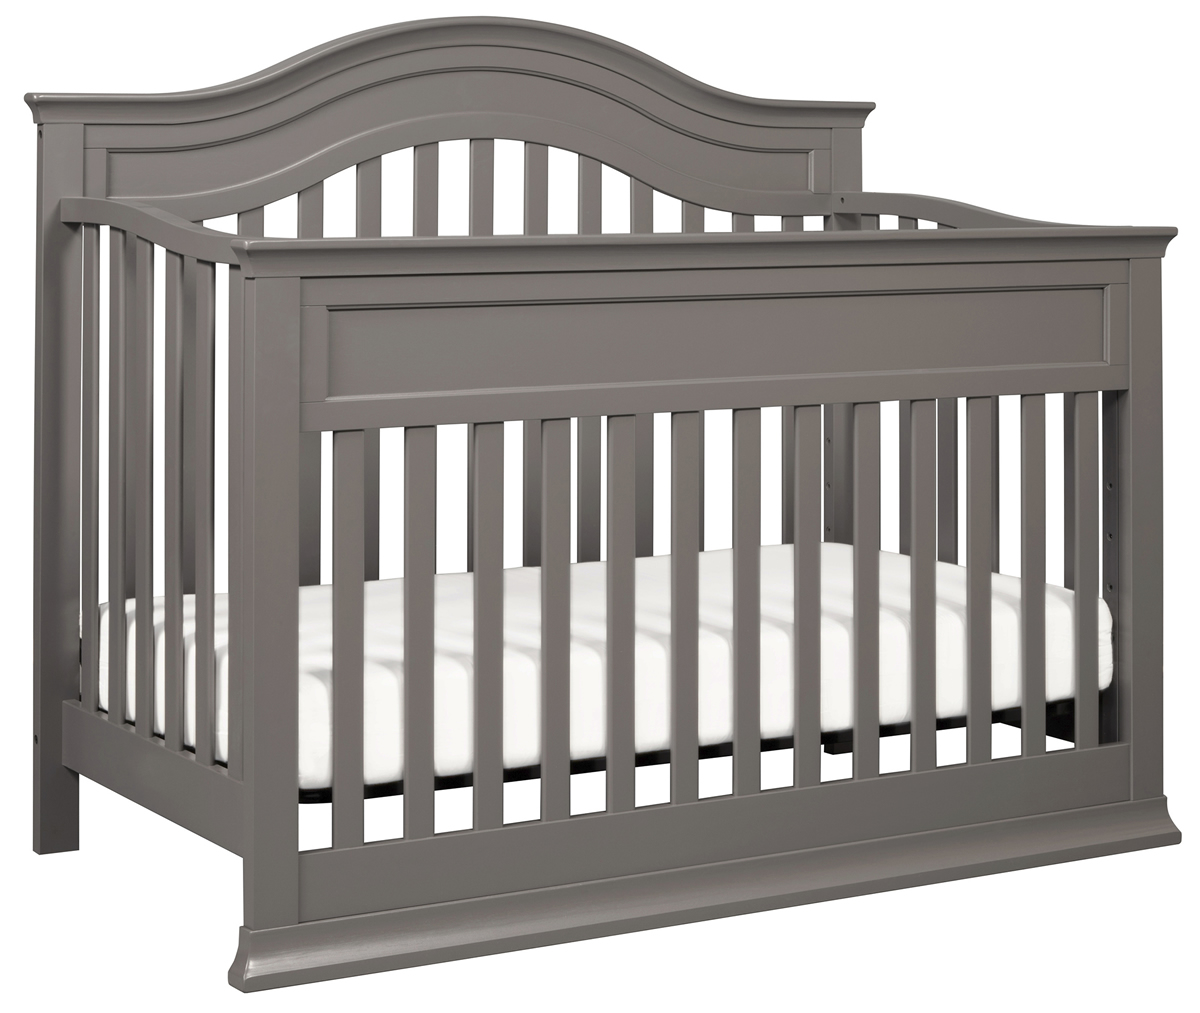 Da Vinci Systems Brook 4-in-1 Convertible Crib With Toddl...